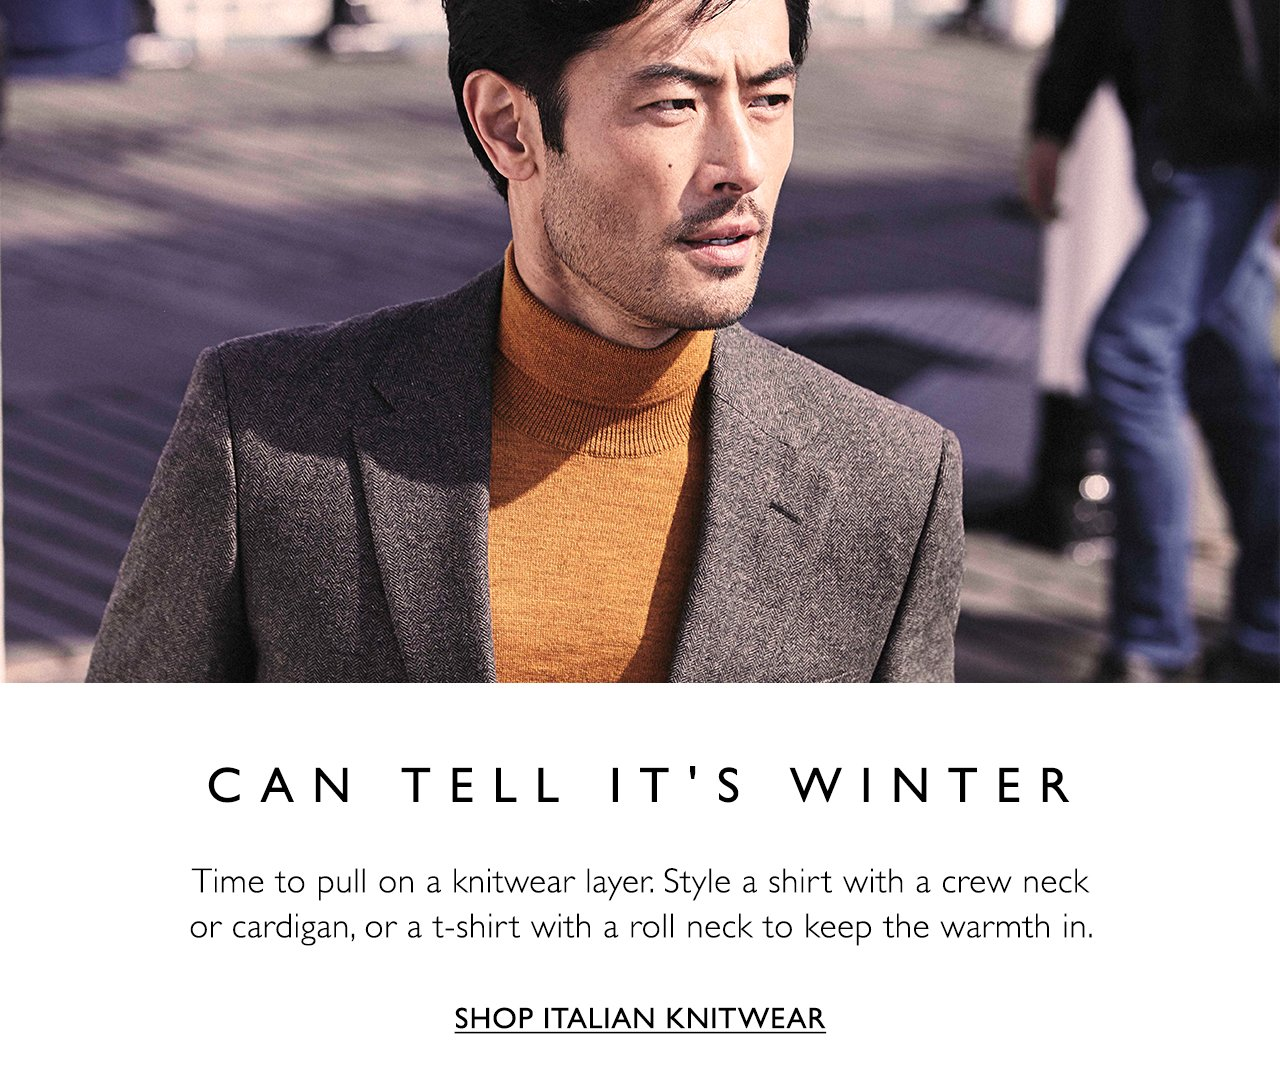 Can tell it's winter. Time to pull on a knitwear layer. Style a shirt with a crew neck or cardigan, or a t-shirt with a roll neck to keep the warmth in. Shop Italian knitwear